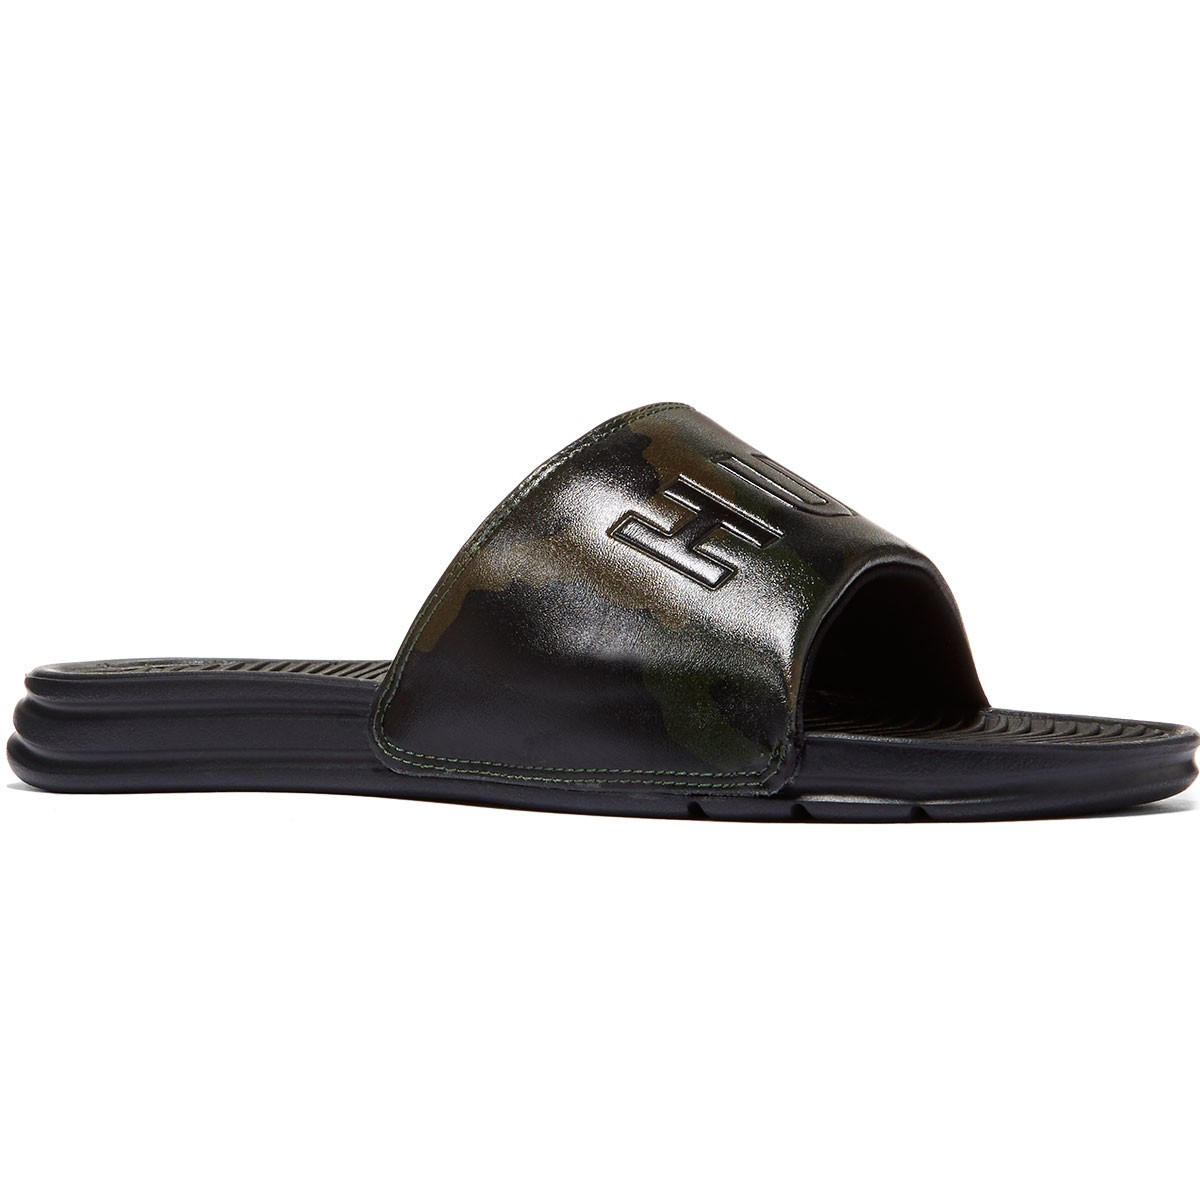 HUF Slide Shoes - Muted Camo - 8.0